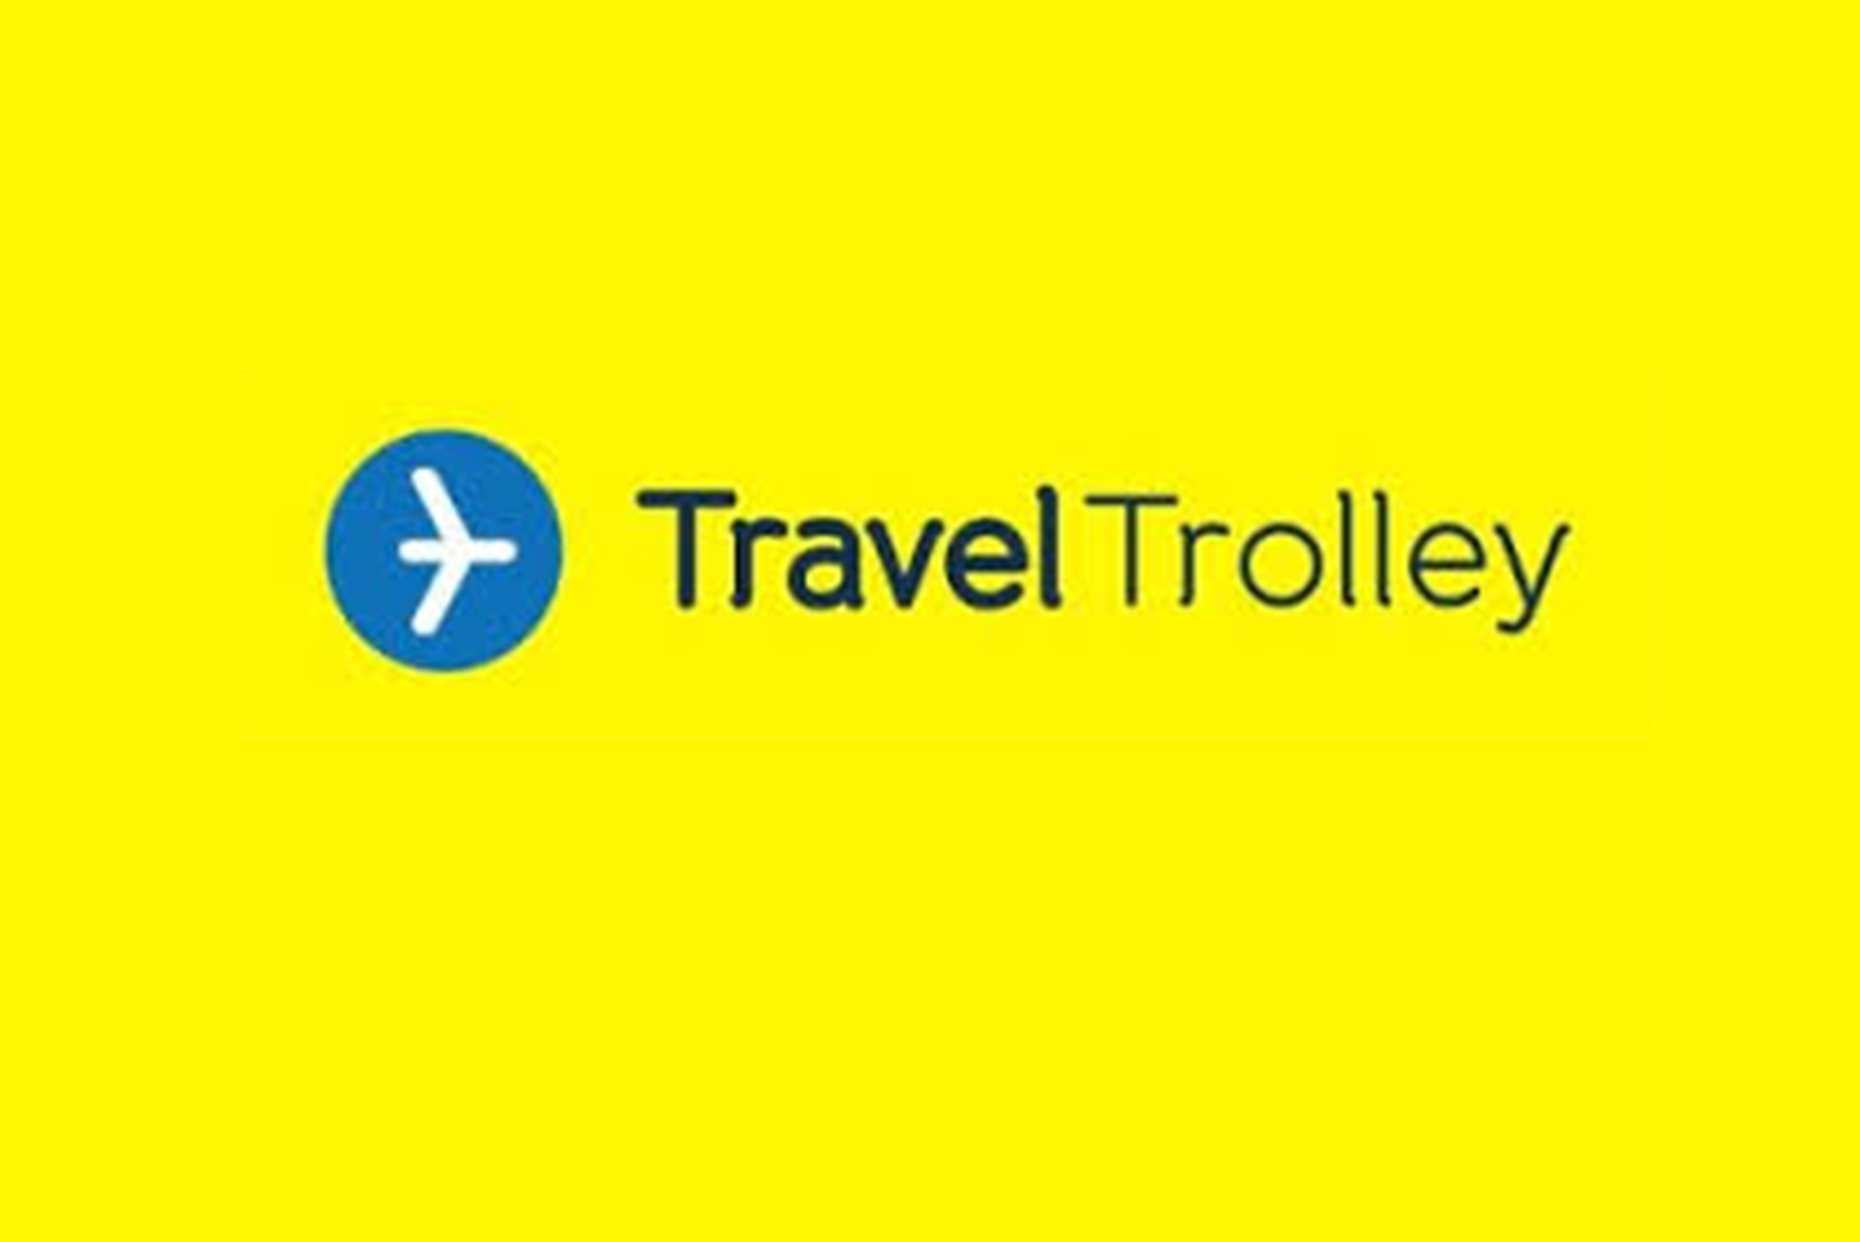 Travel Trolley coupon codes